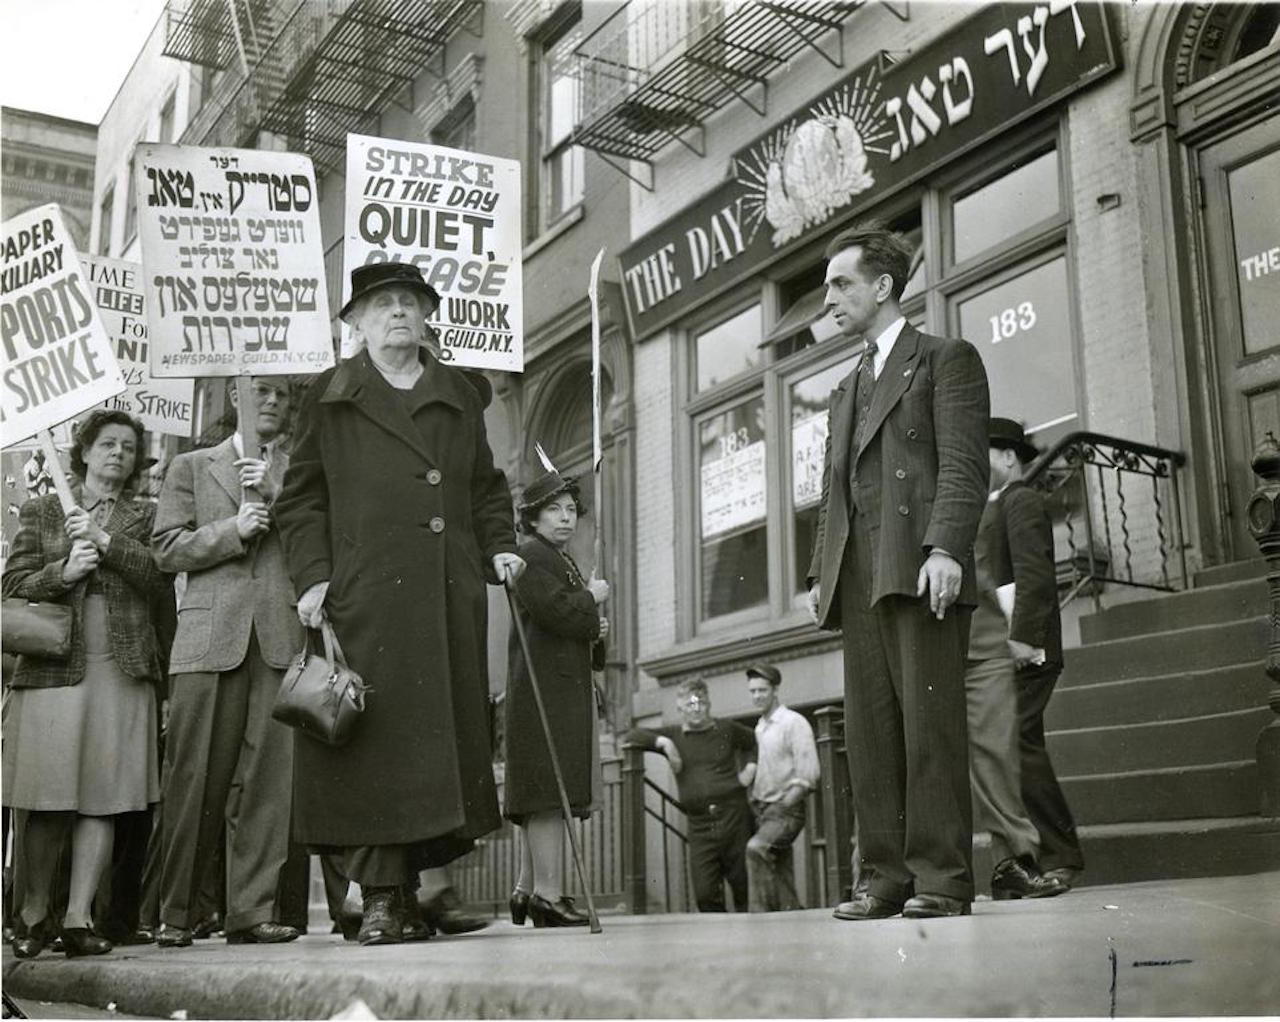 PM New York Daily: 1940-48